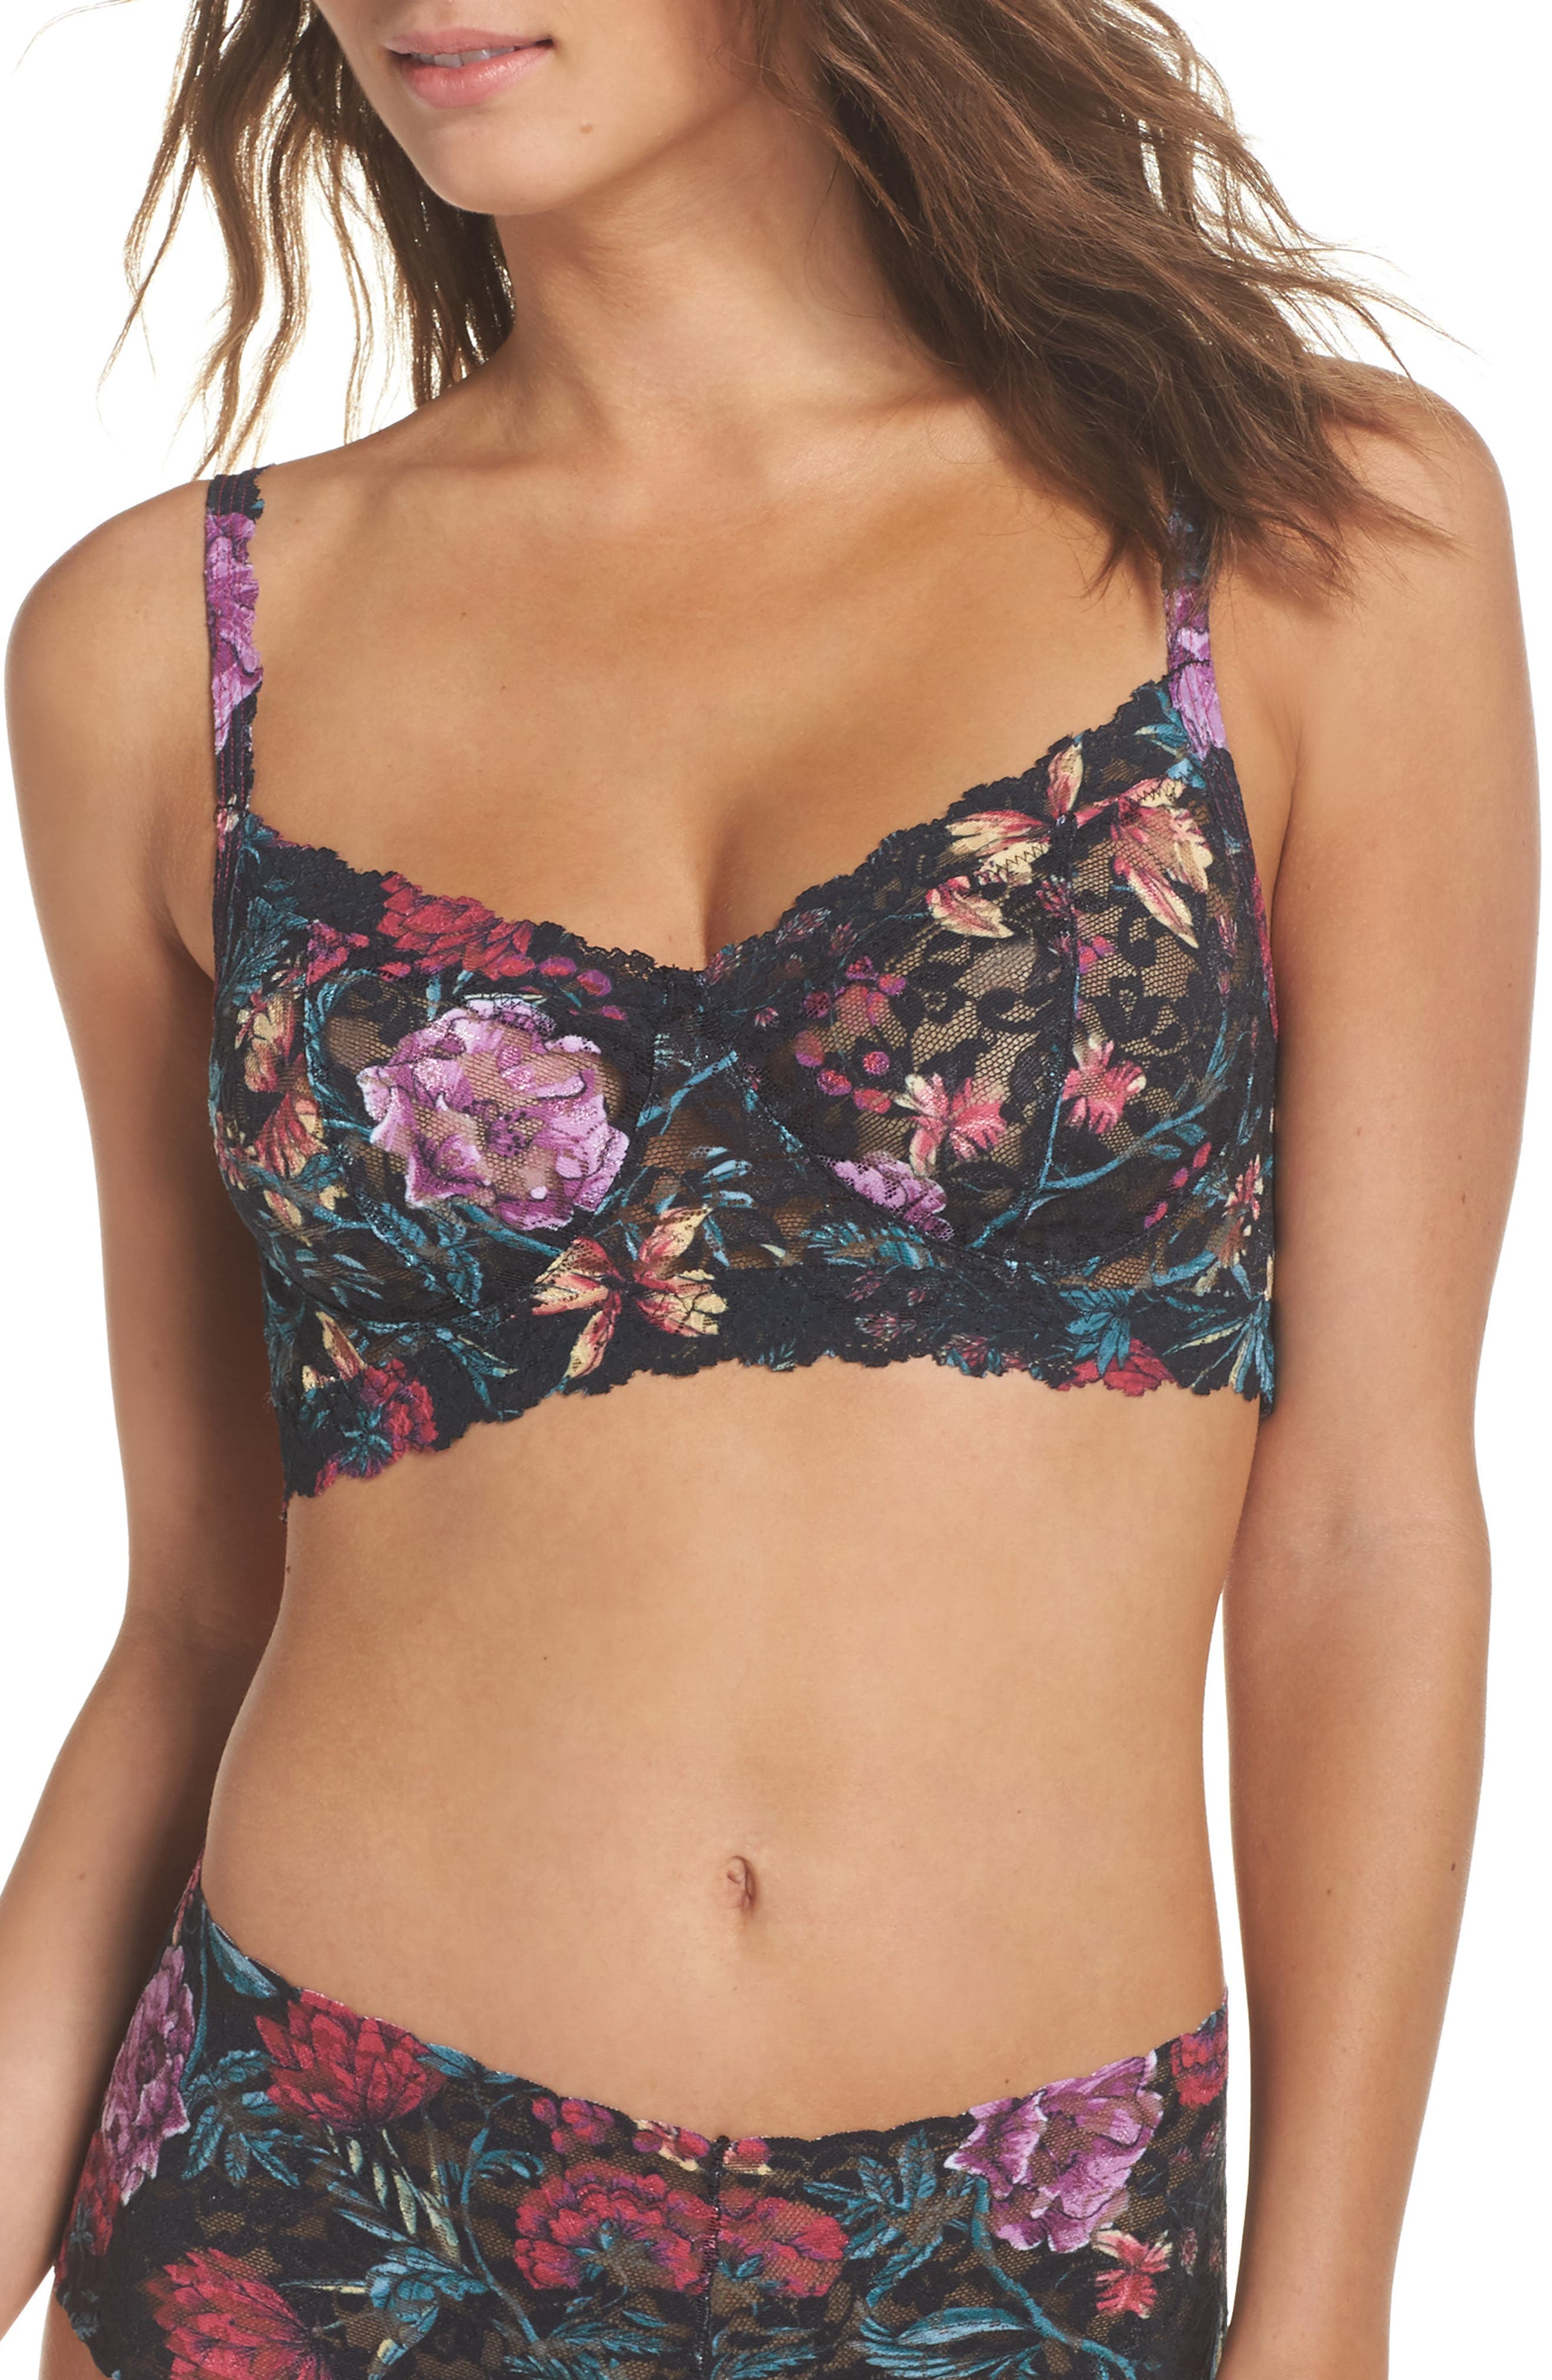 Moody Blooms Retro Bralette,                             Main thumbnail 1, color,                             001